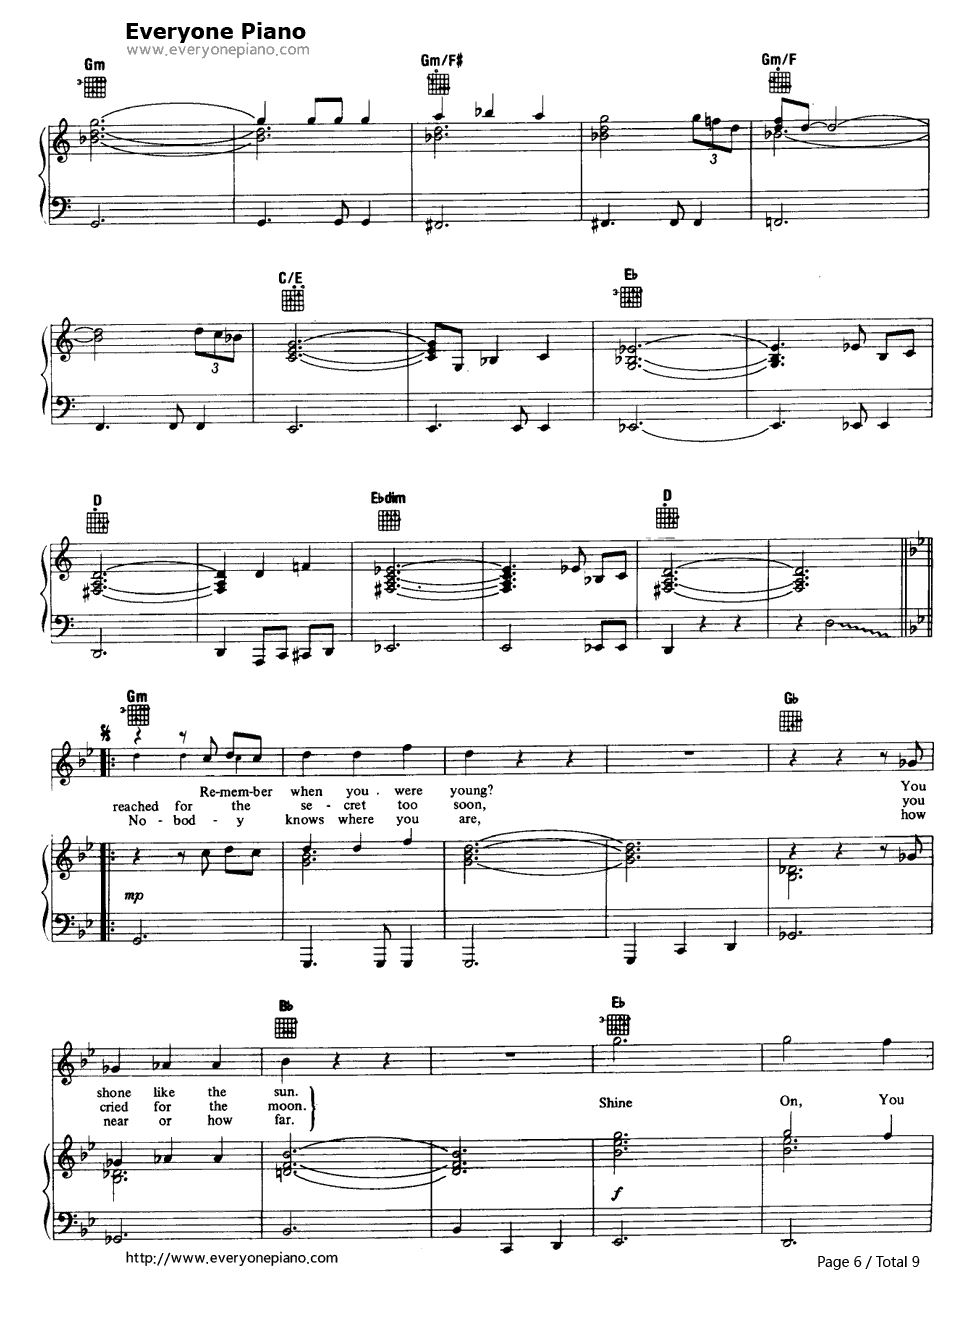 shine on you crazy diamond pink floyd stave preview 6 free piano sheet music piano chords. Black Bedroom Furniture Sets. Home Design Ideas